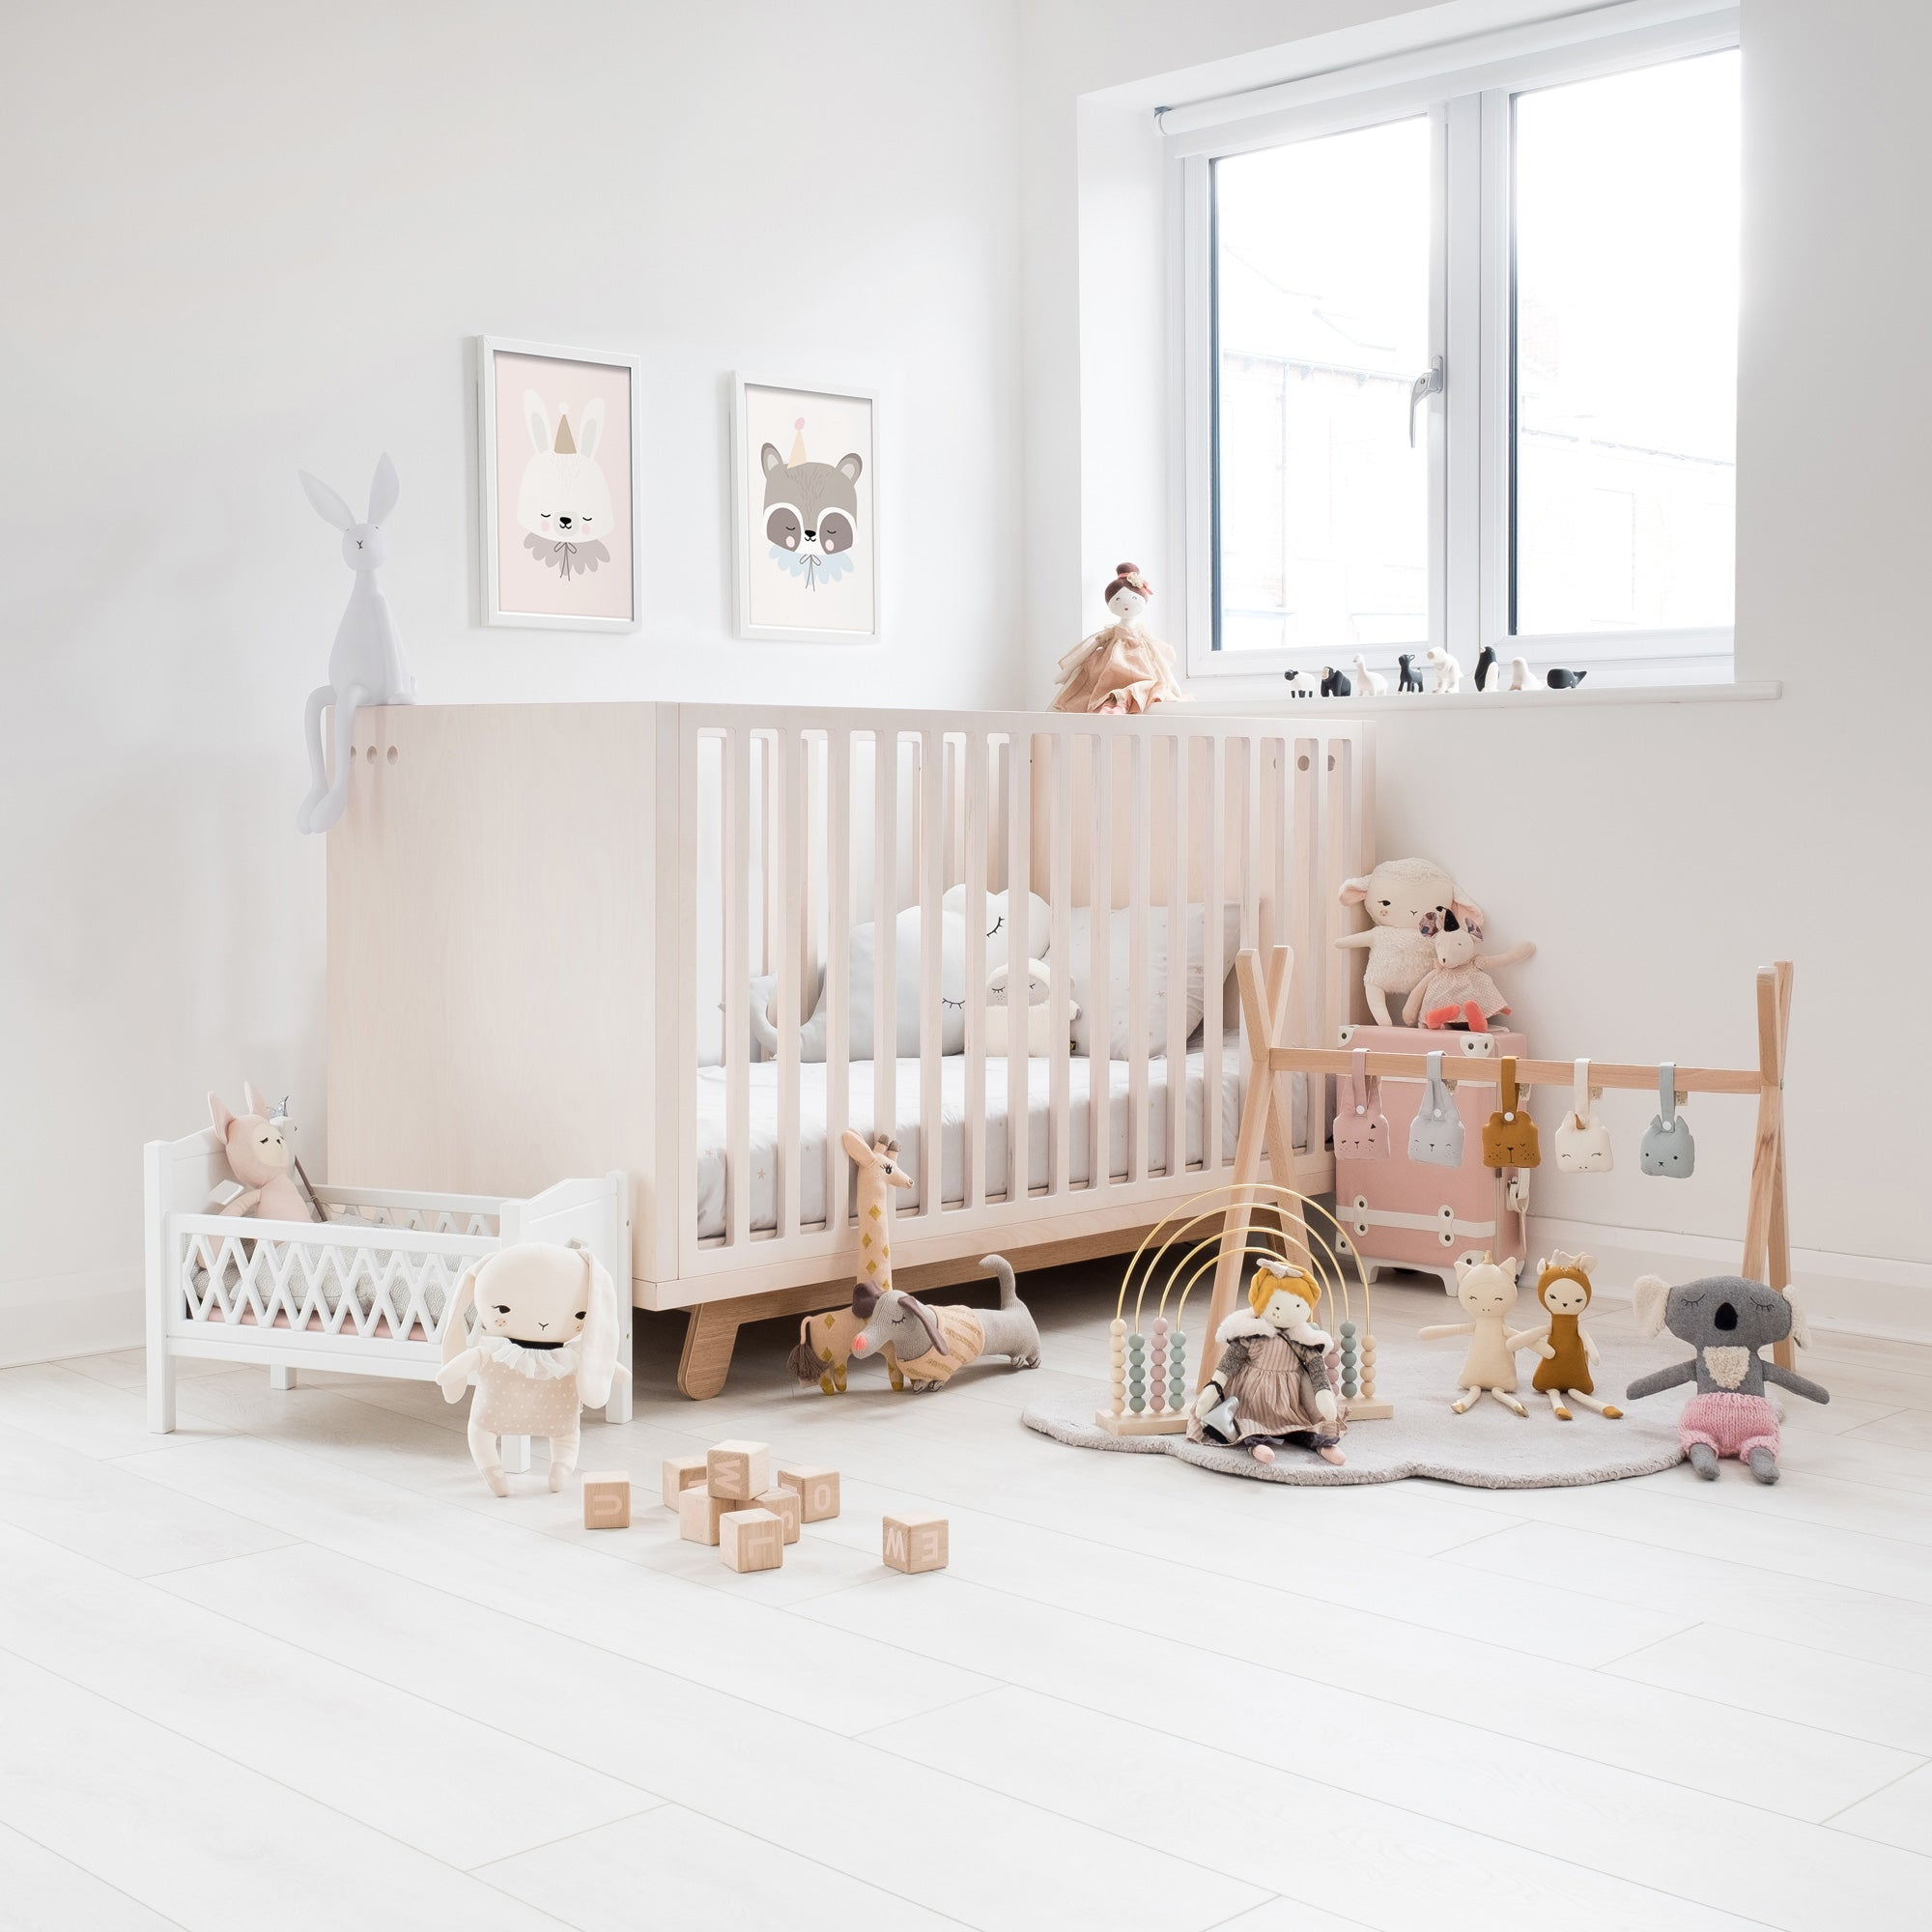 Goodnight Bunny! Nursery designed by Bobby Rabbit.